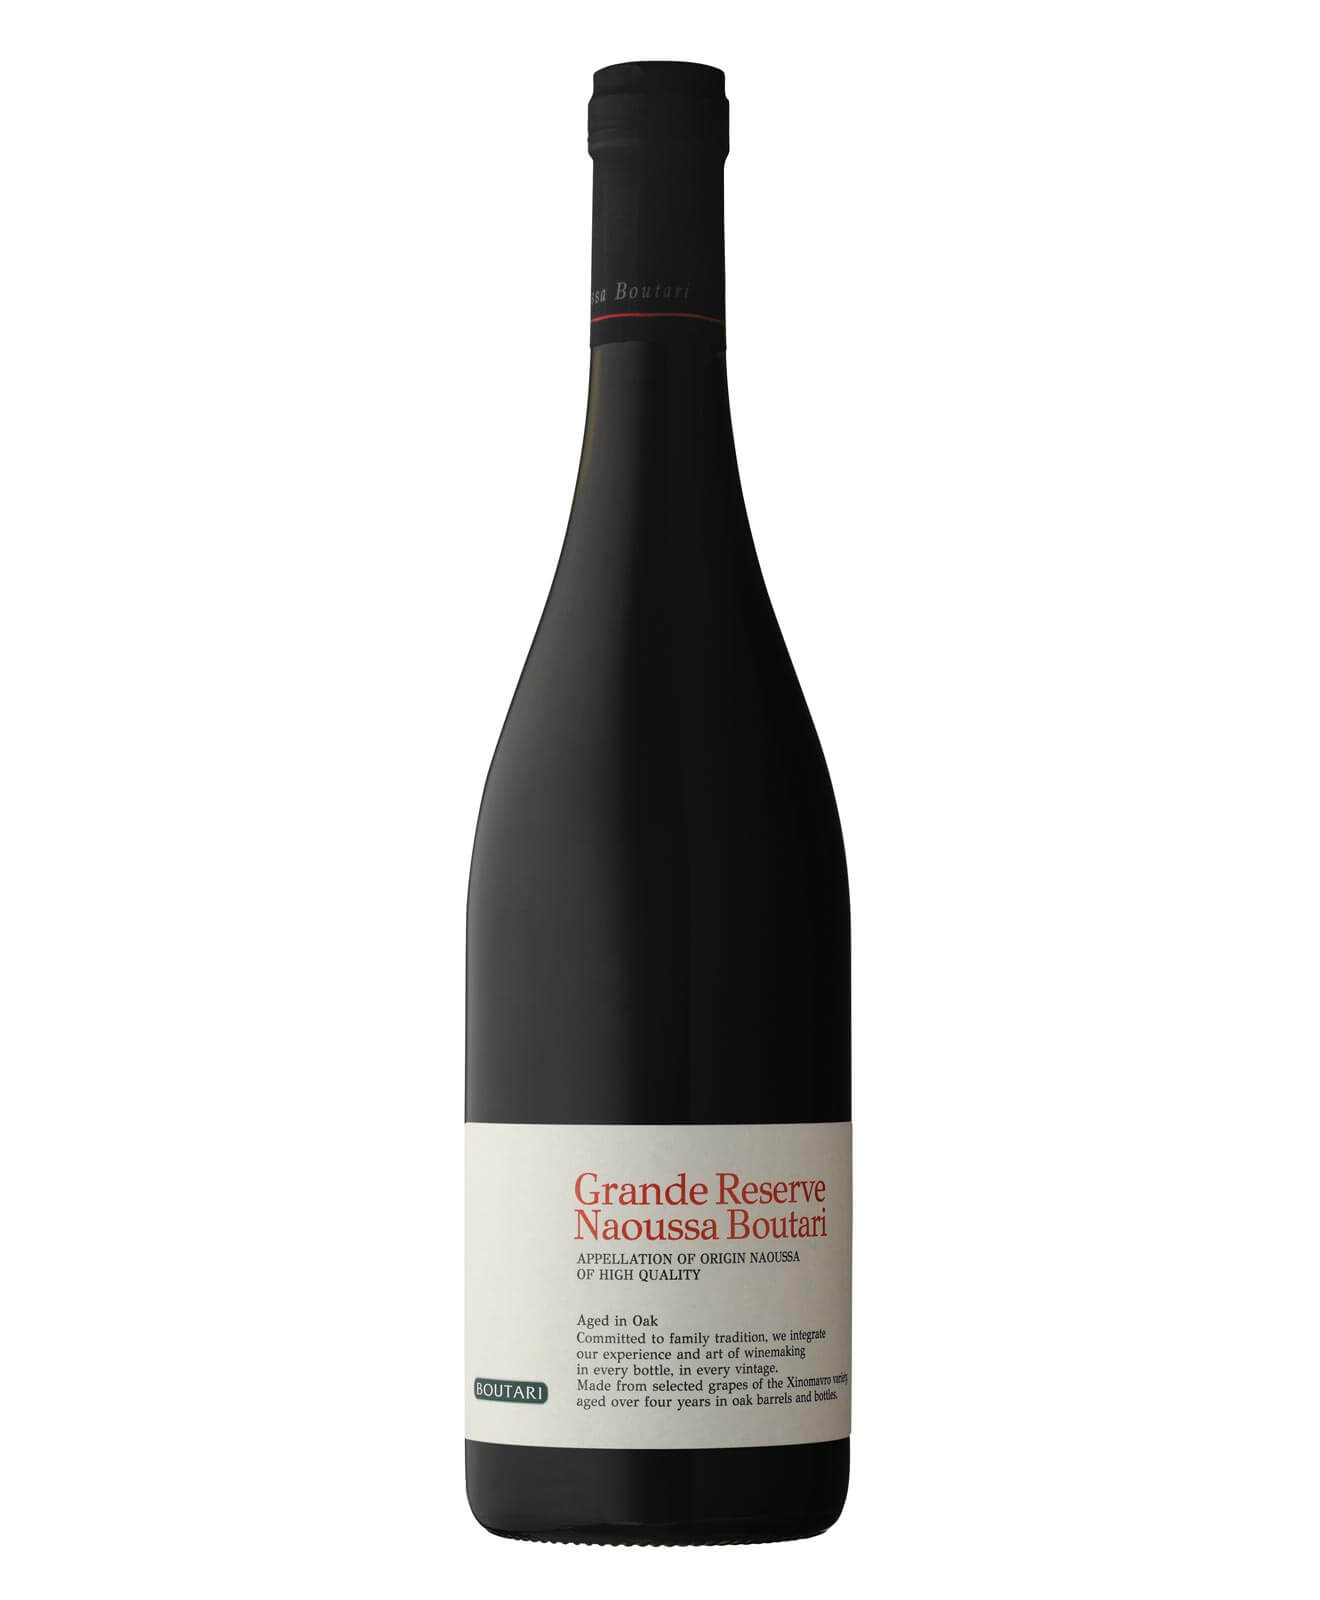 2012 Boutari Grande Reserve Naoussa, bottle on white